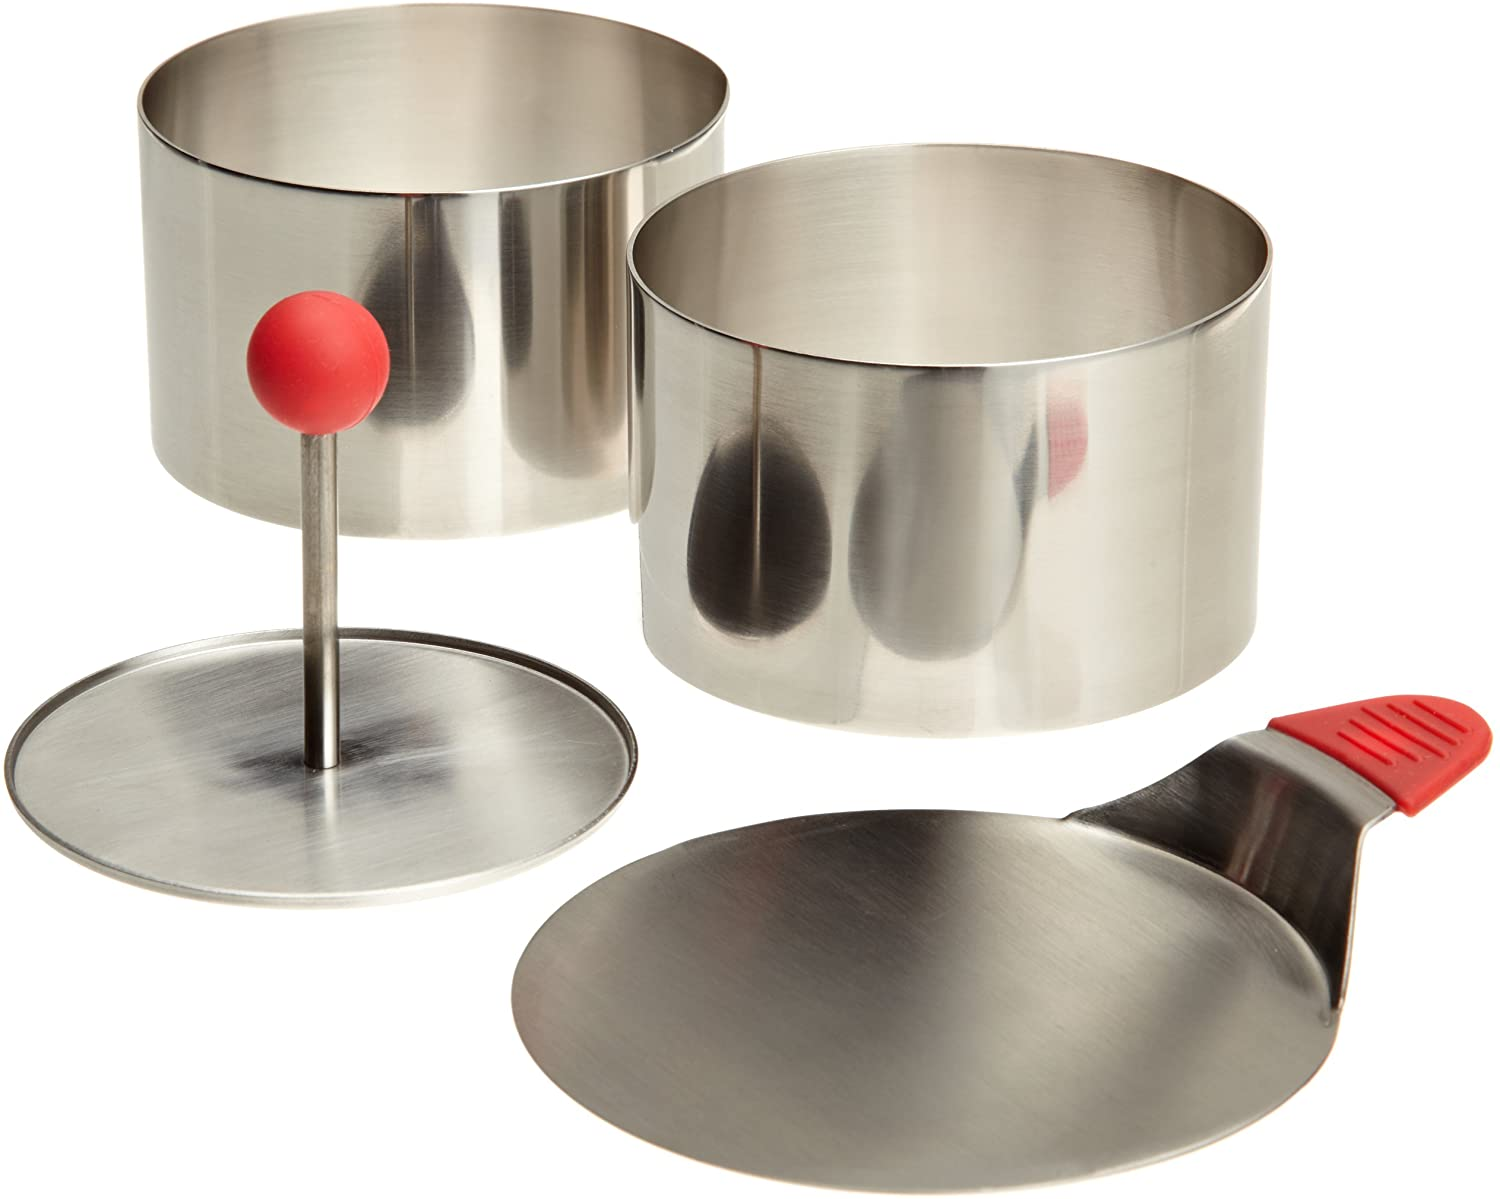 Ateco Round Food Molding Set, 3.5 by 2.1-Inches High, 4-Piece Set Includes 2 Rings, Fitted Press & Transfer Plate